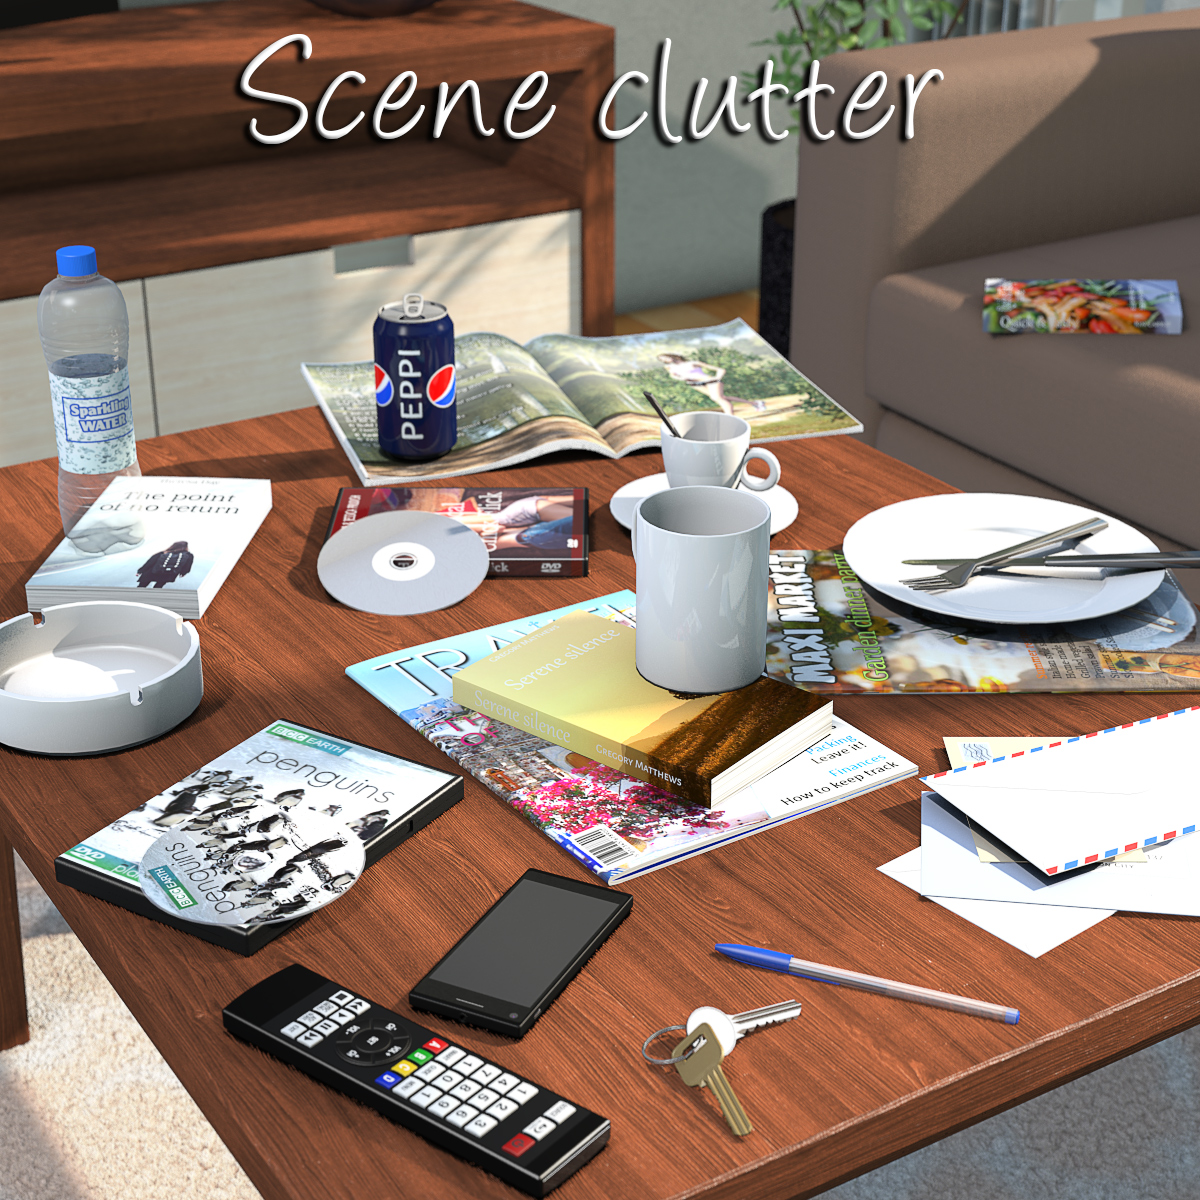 Everyday items, Scene clutter